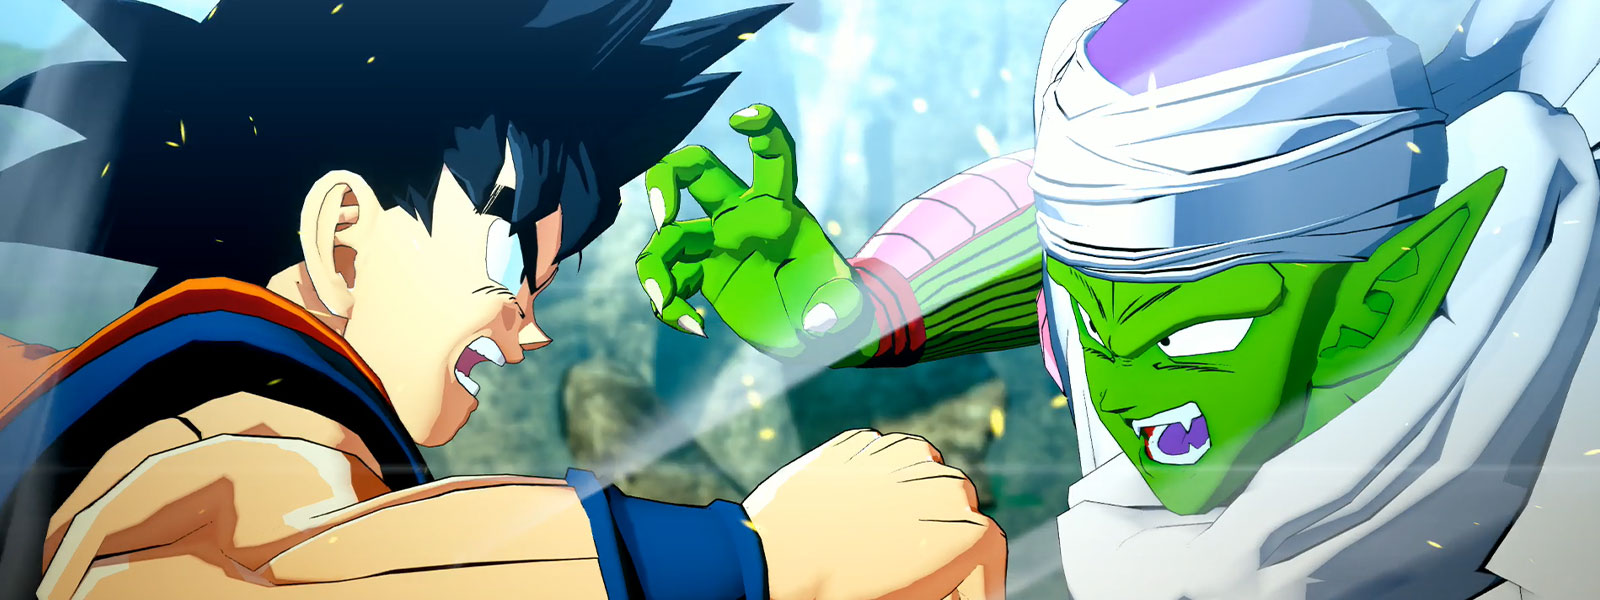 Goku and Piccolo looks angrily at each other as they are engaged in battle